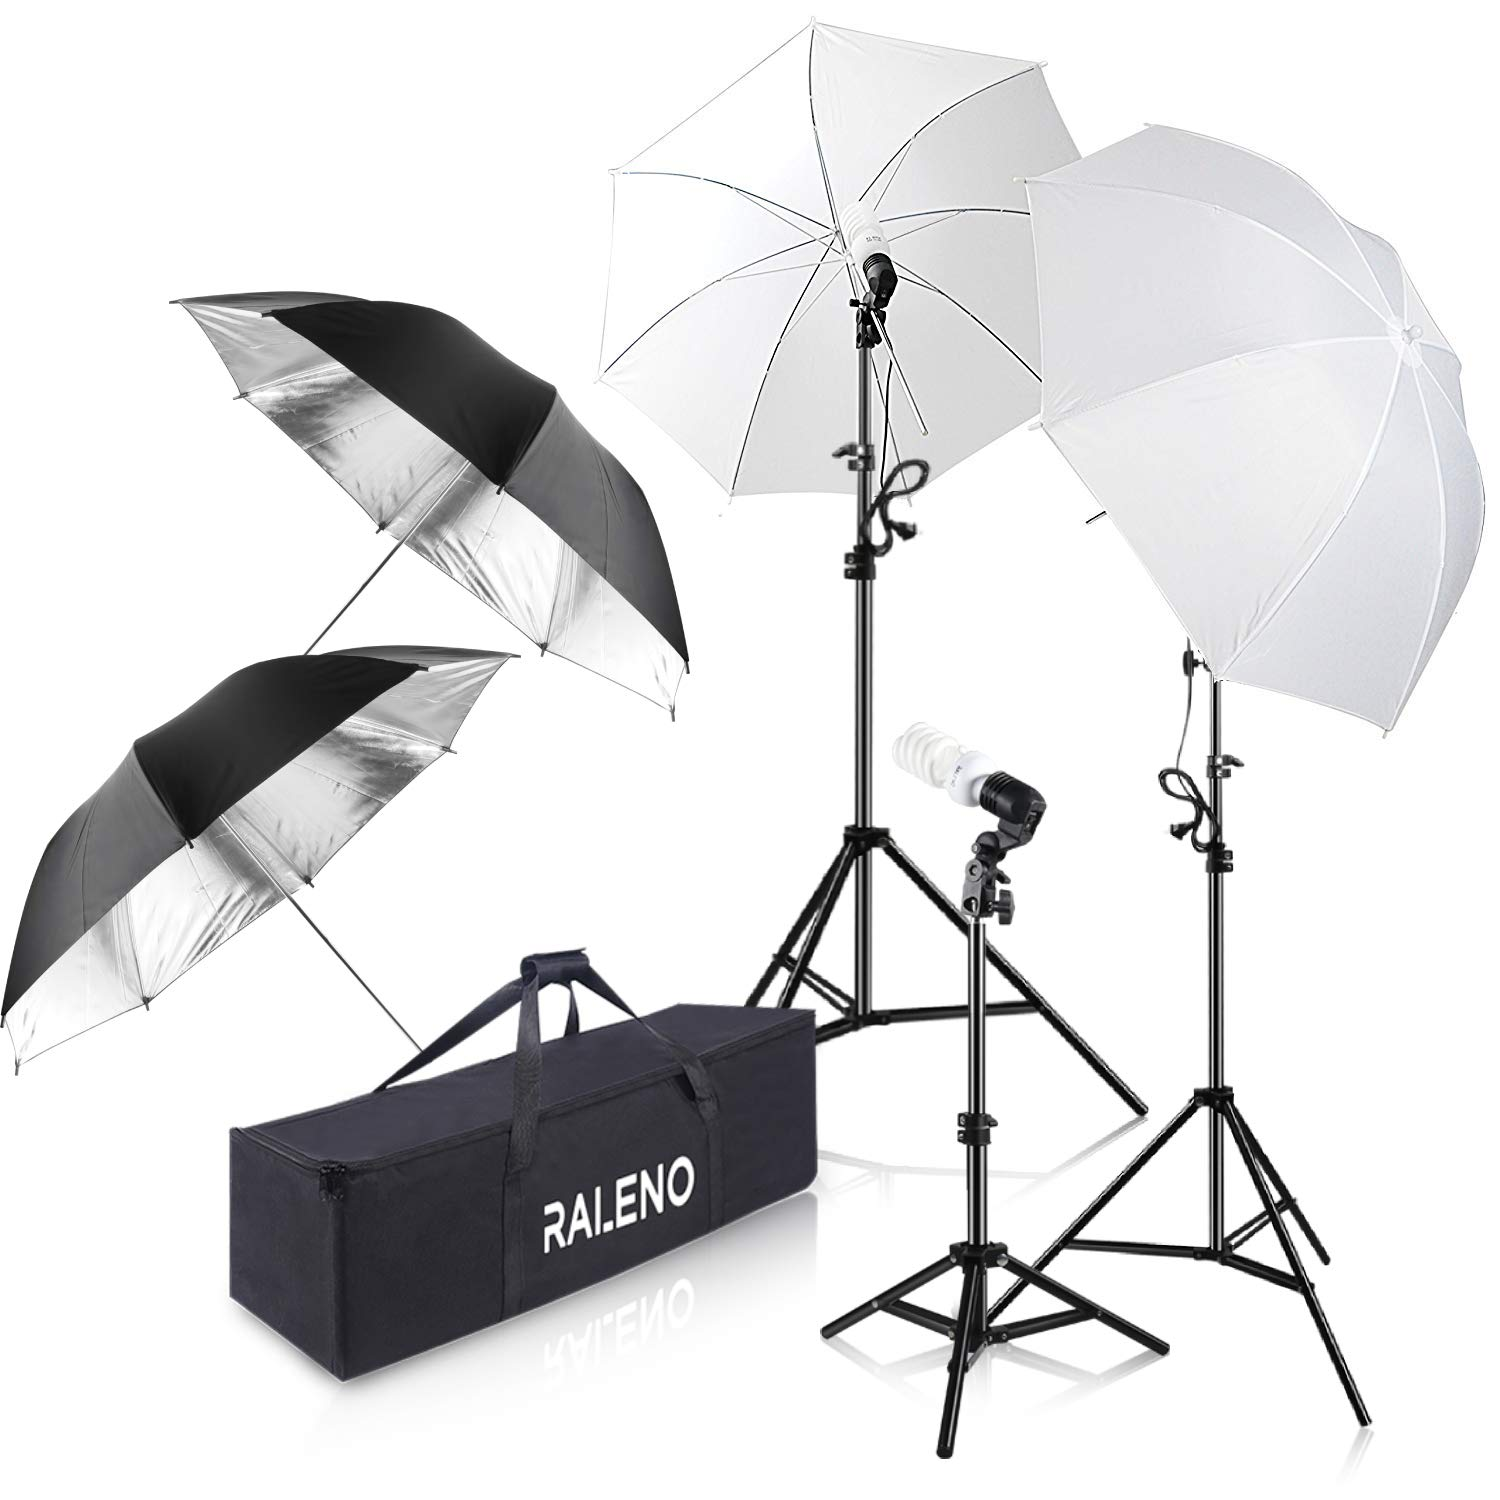 Photography Umbrella Lighting Kit, 600W 5500K Day Light Continuous Studio Lights Equipment for Portrait Video Studio Shooting by RALENO by RaLeno (Image #1)